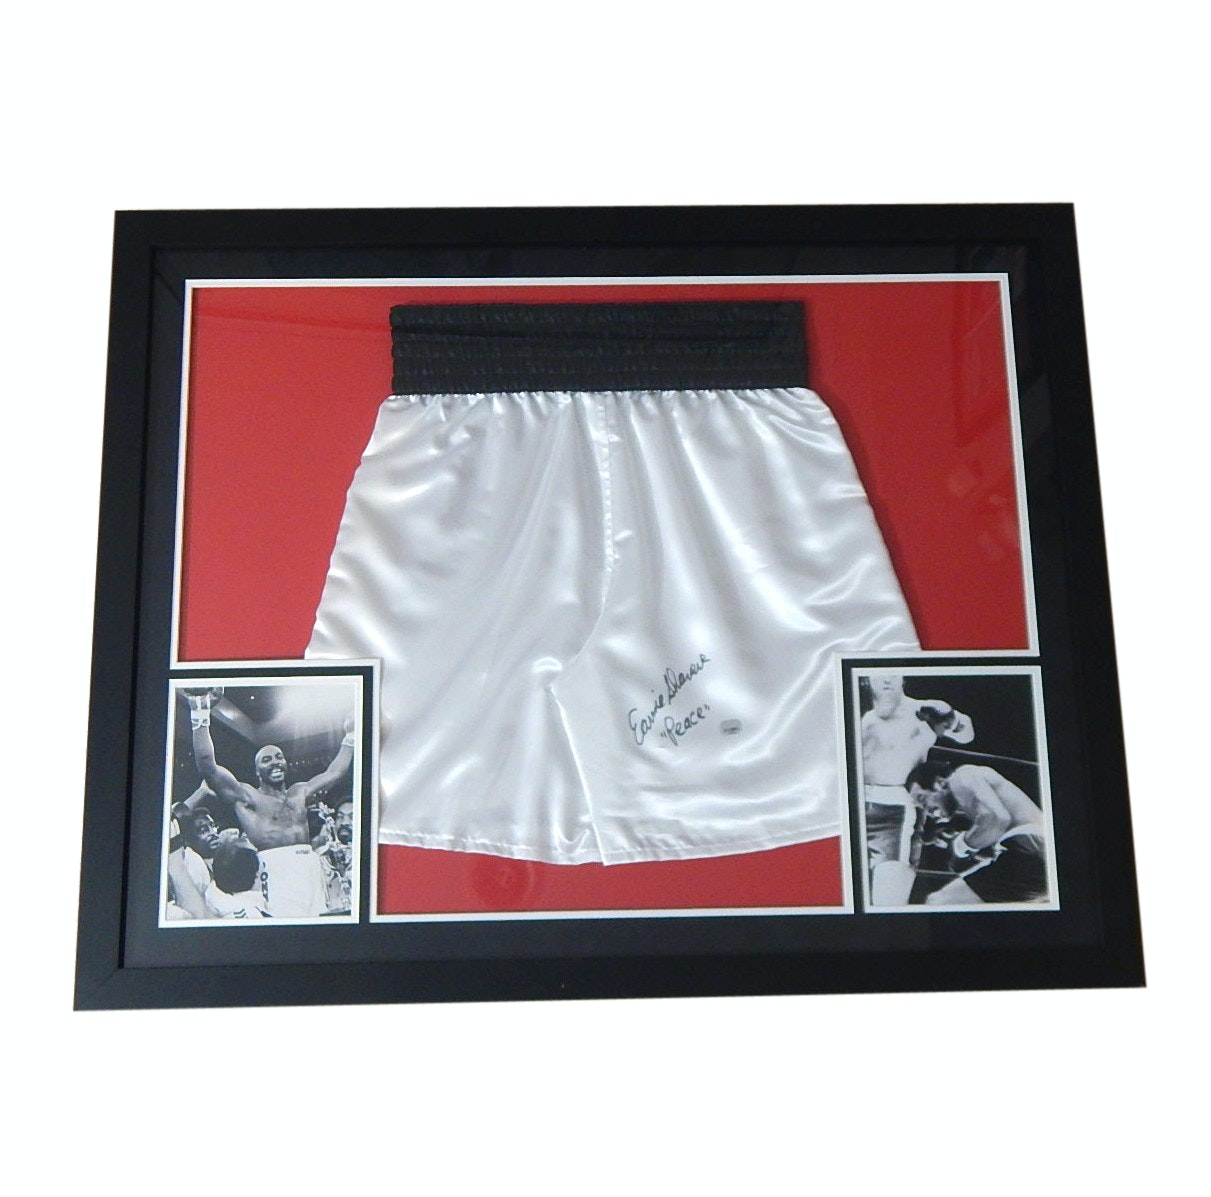 Boxing Earnie Shavers Signed Boxing Shorts and Photograph - Authenticated